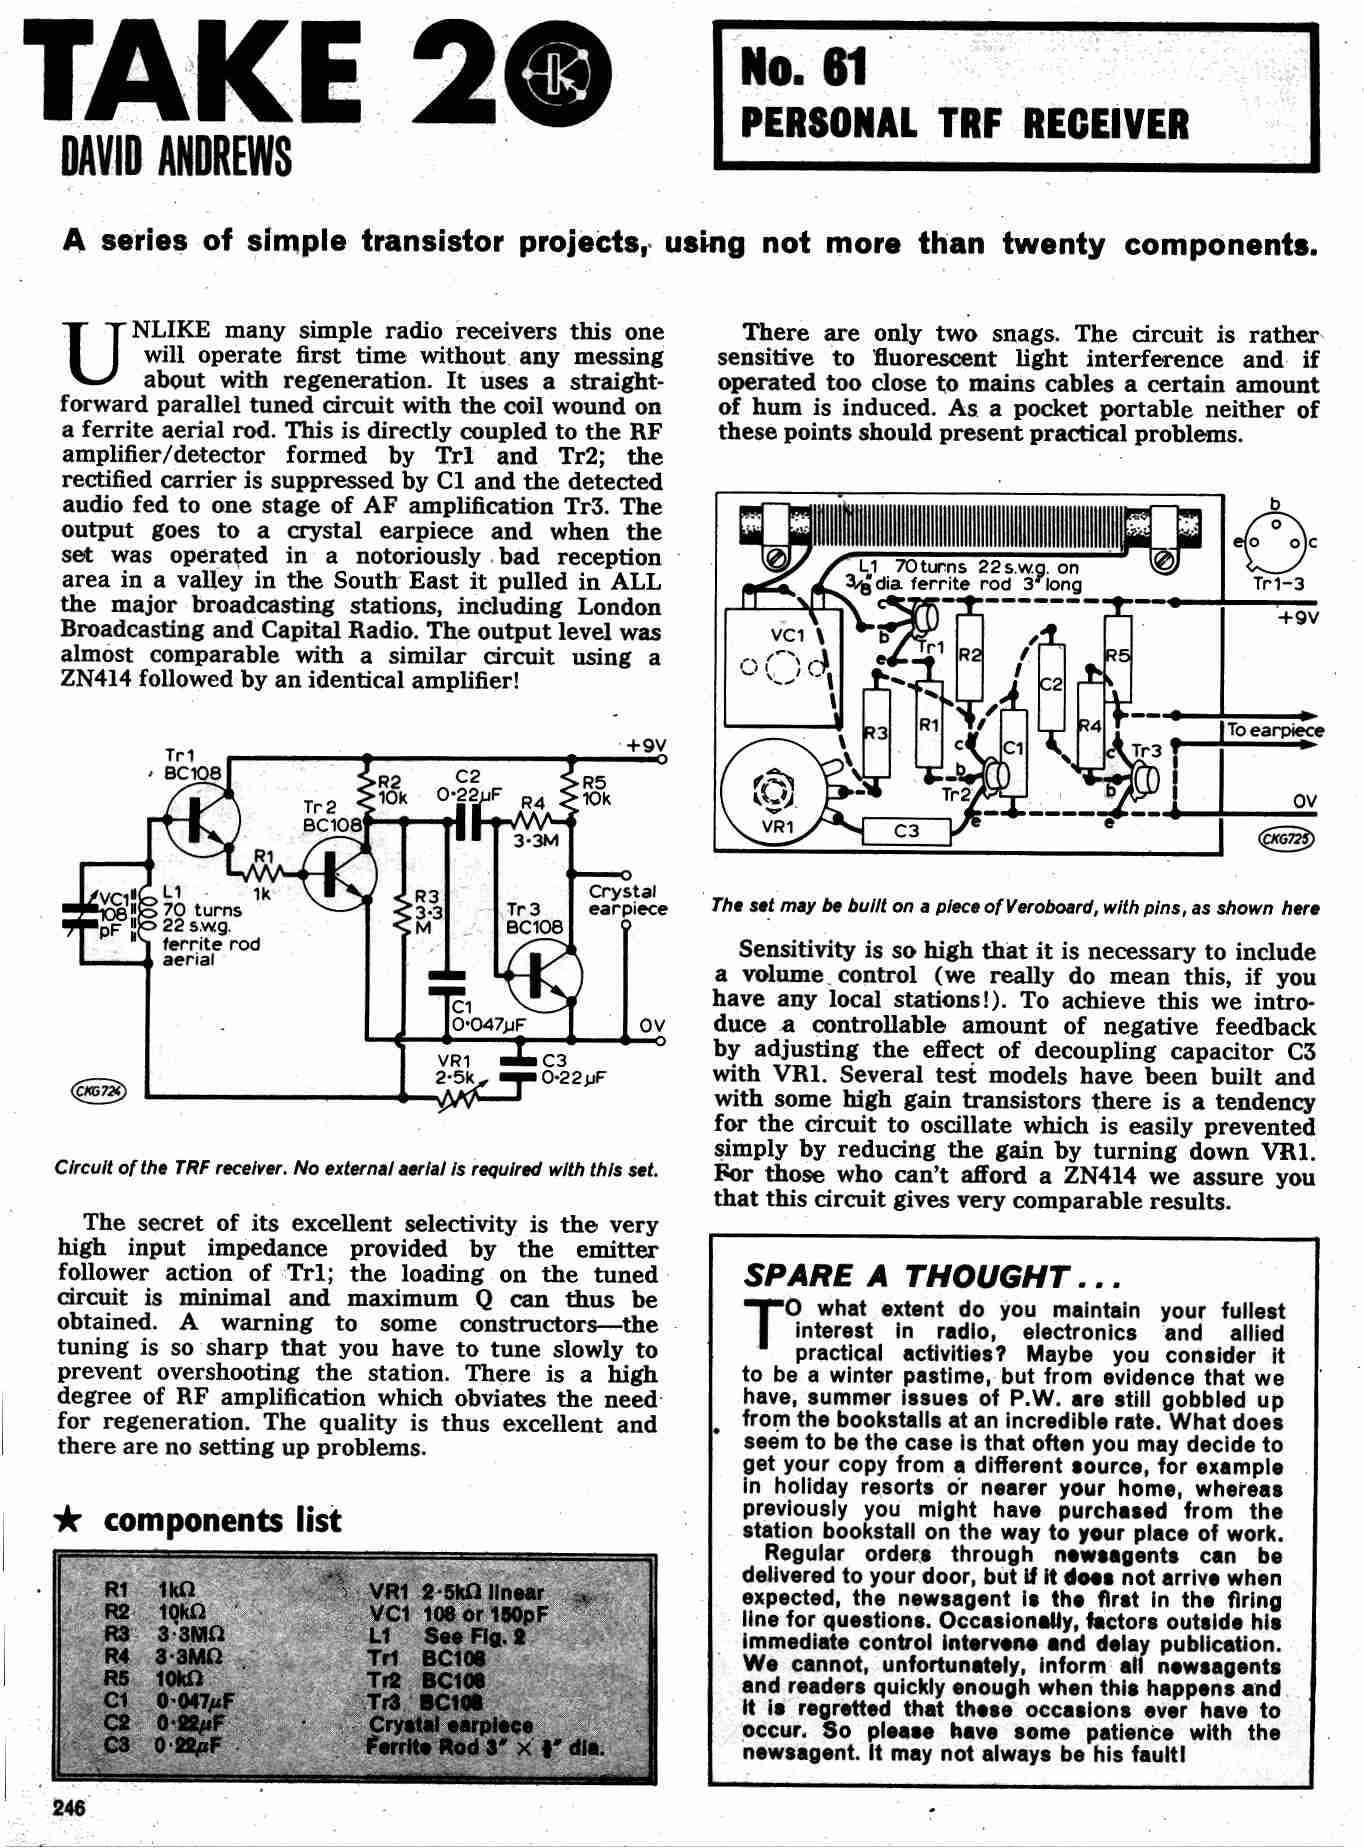 Schematic Diagram Of Am Transistor Radio Kits For Sale Zn414 Portable Receiver Circuit Pw Uk Vintage